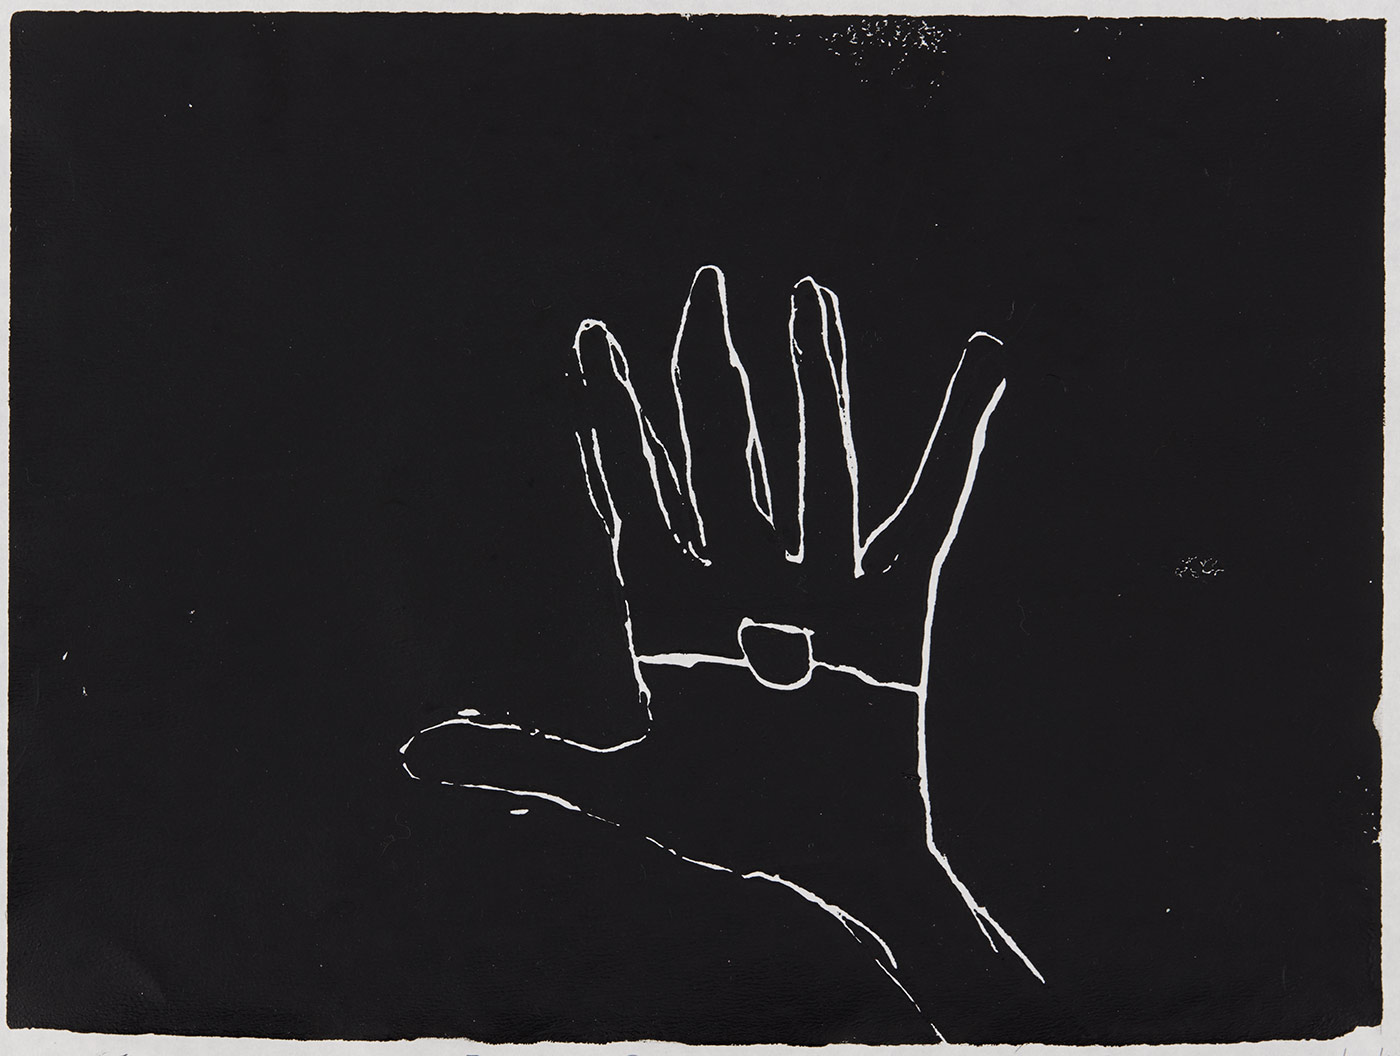 Print, black ink on white paper, depicting a hand with a line and a circle across the middle. Annotated in pencil 'FOREVER BLACK JONAS INGREY 11/12/19'. - click to view larger image